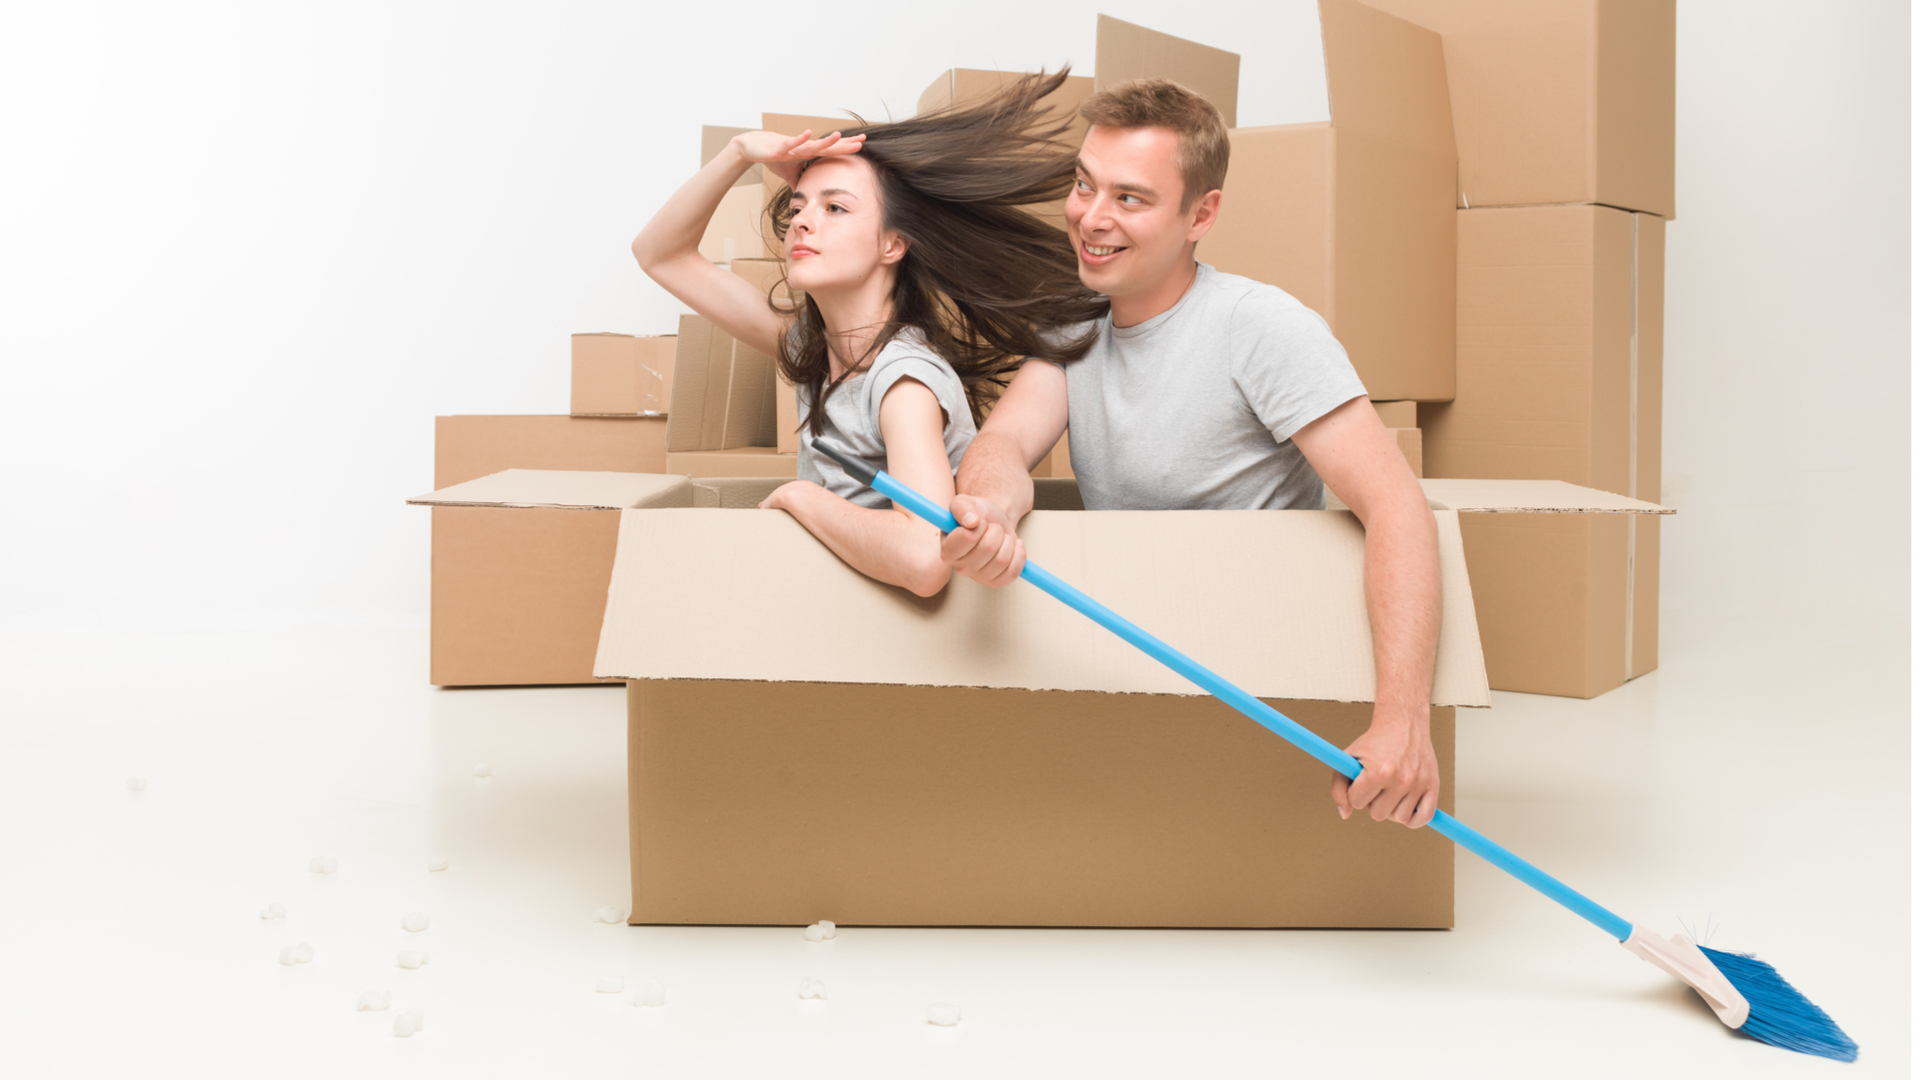 Photo of couple playing in cardboard box